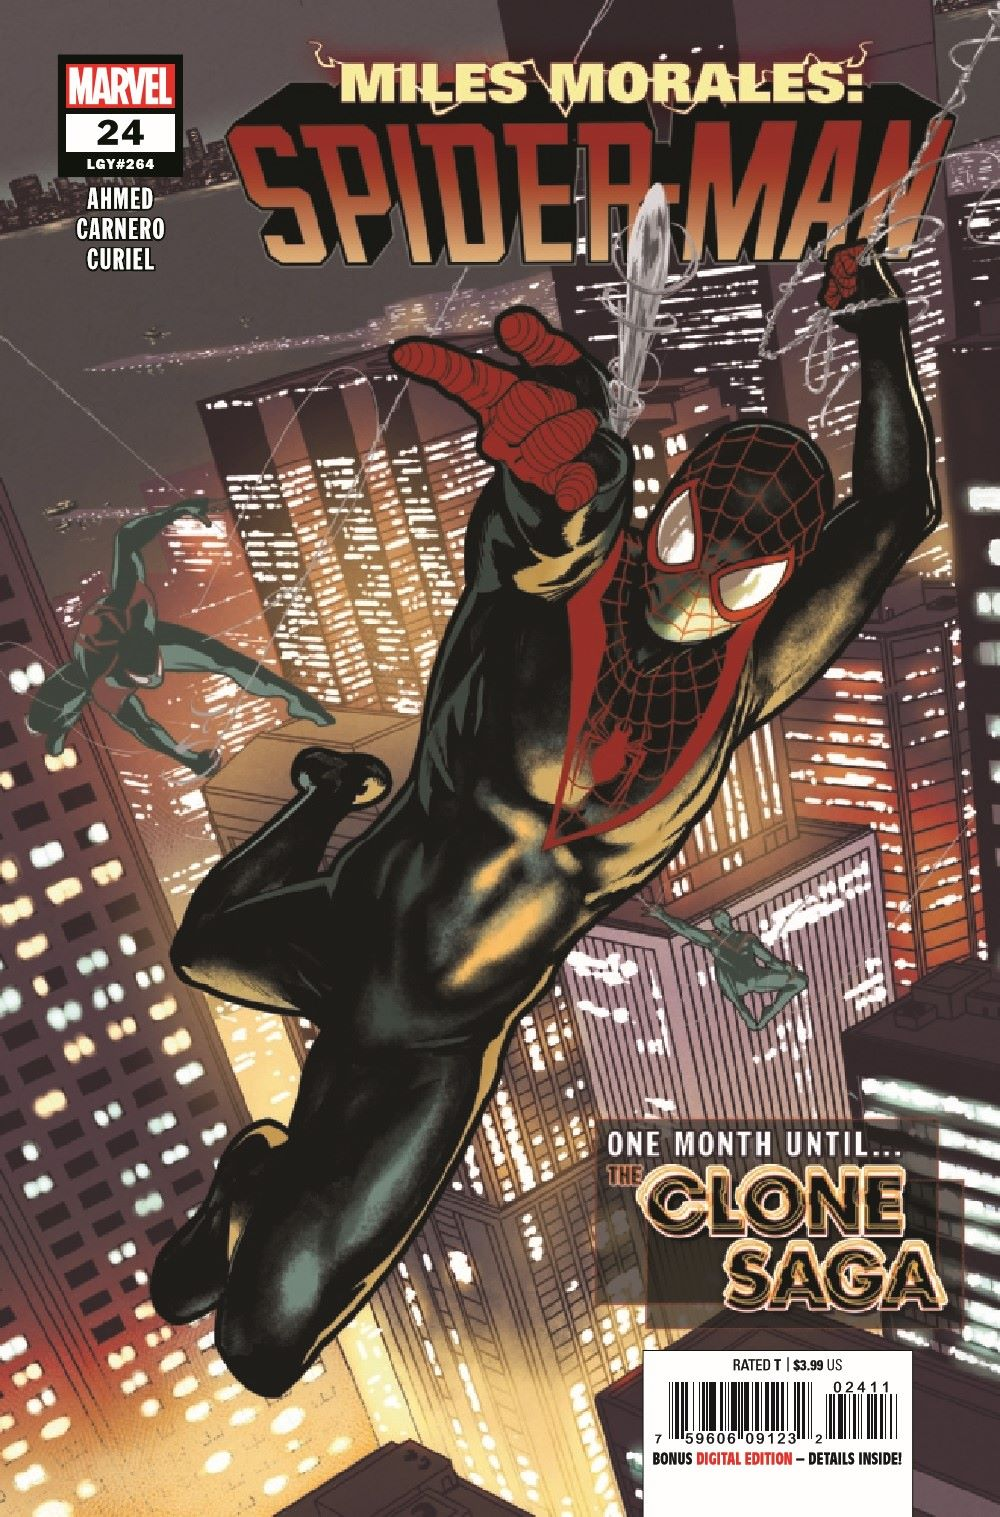 MMSM2018024_Preview-1 ComicList Previews: MILES MORALES SPIDER-MAN #24